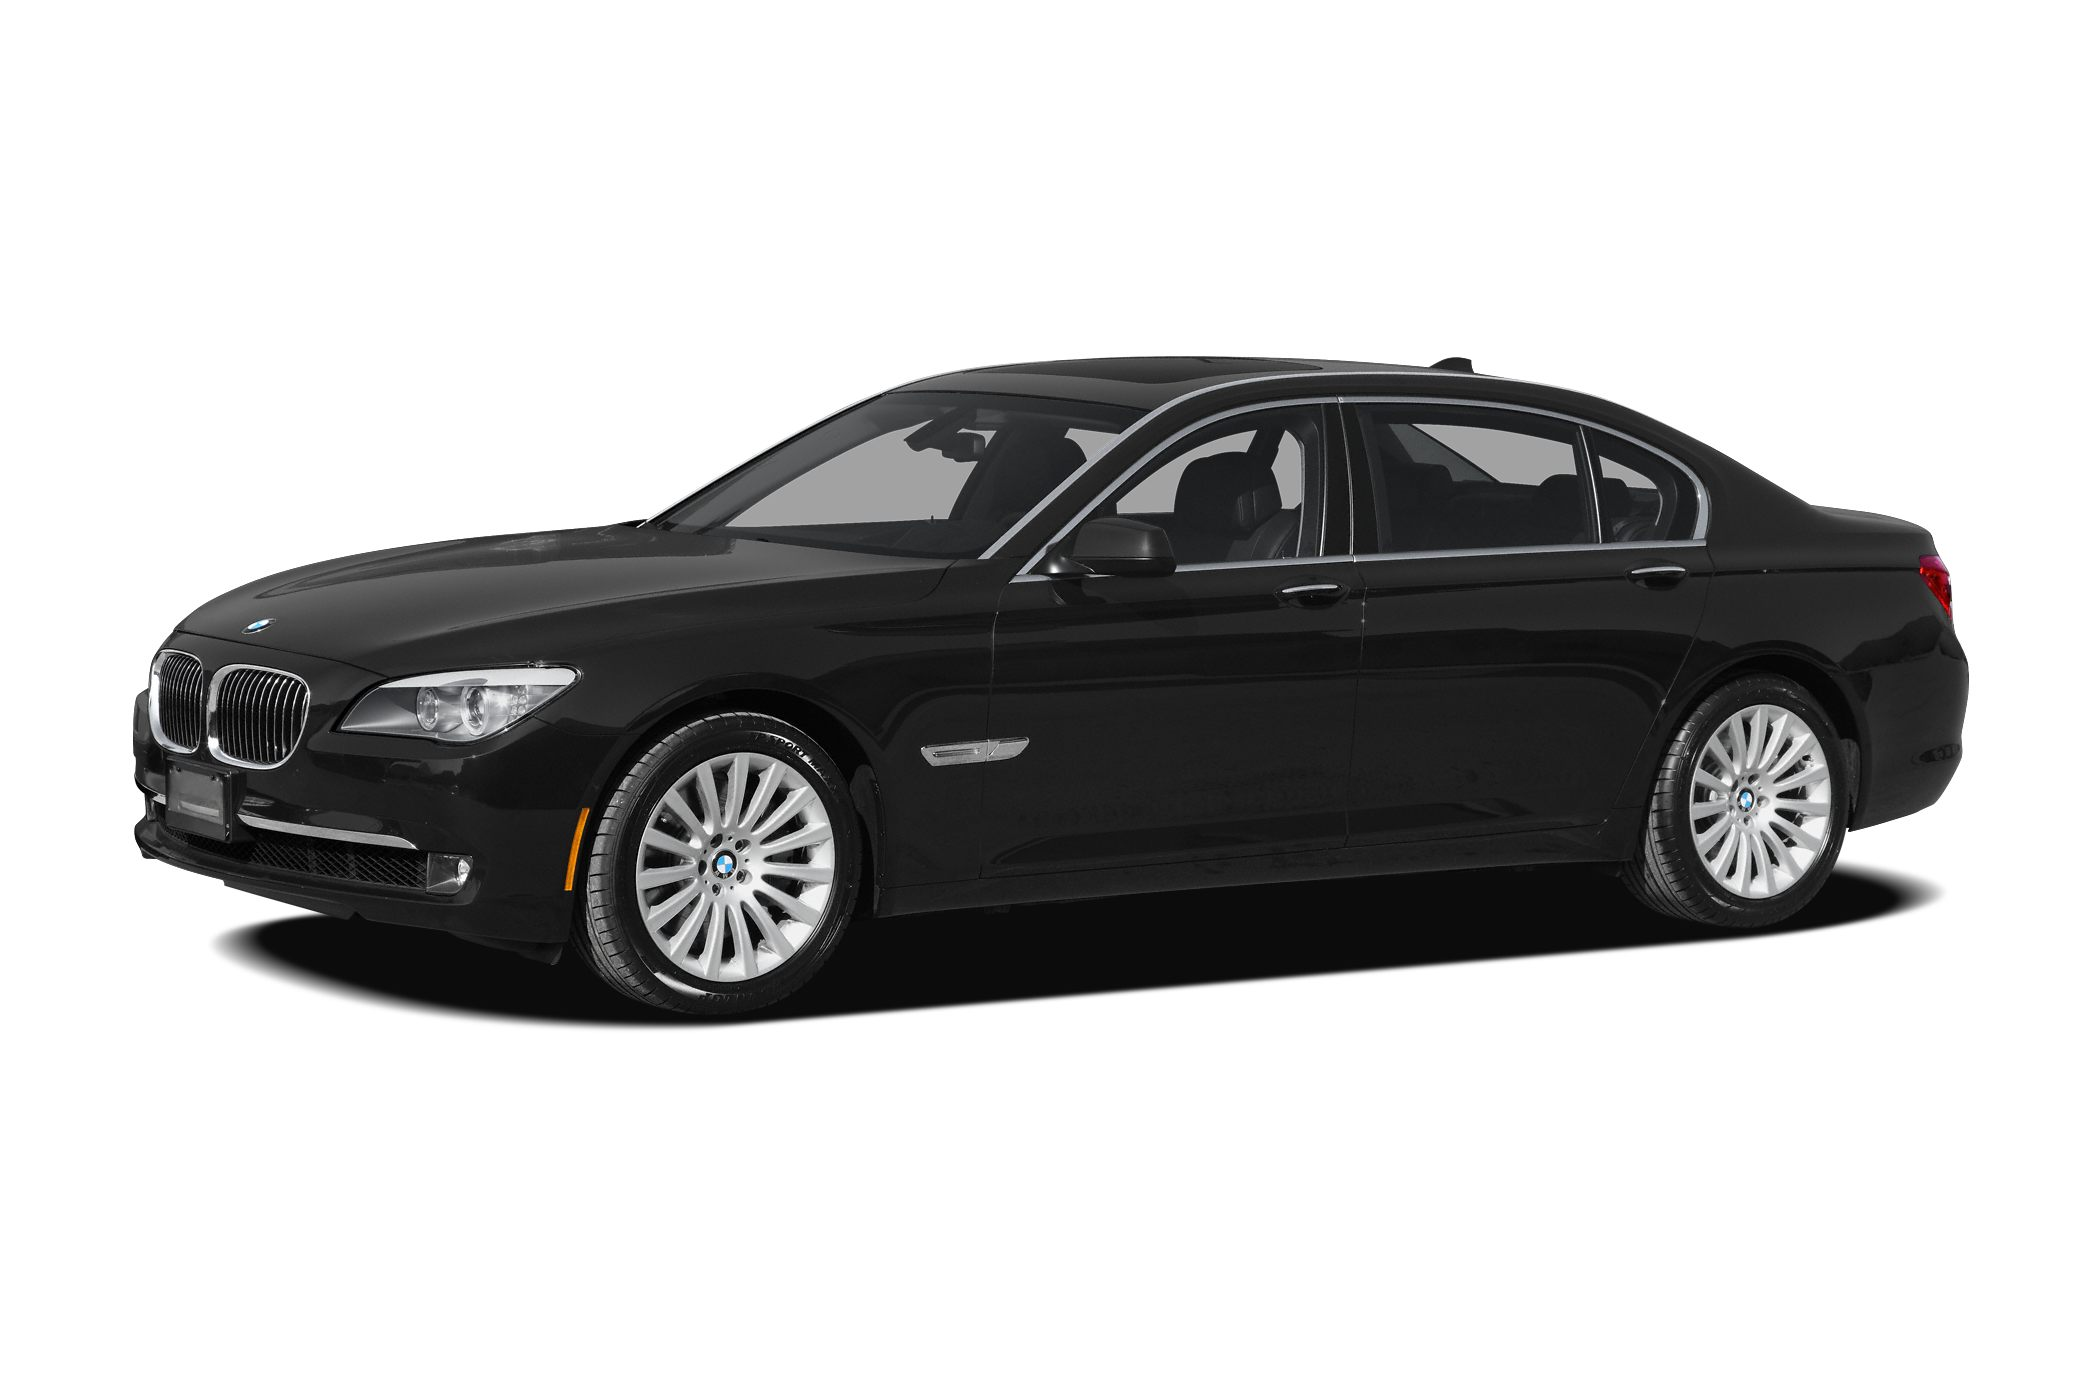 2010 BMW 750